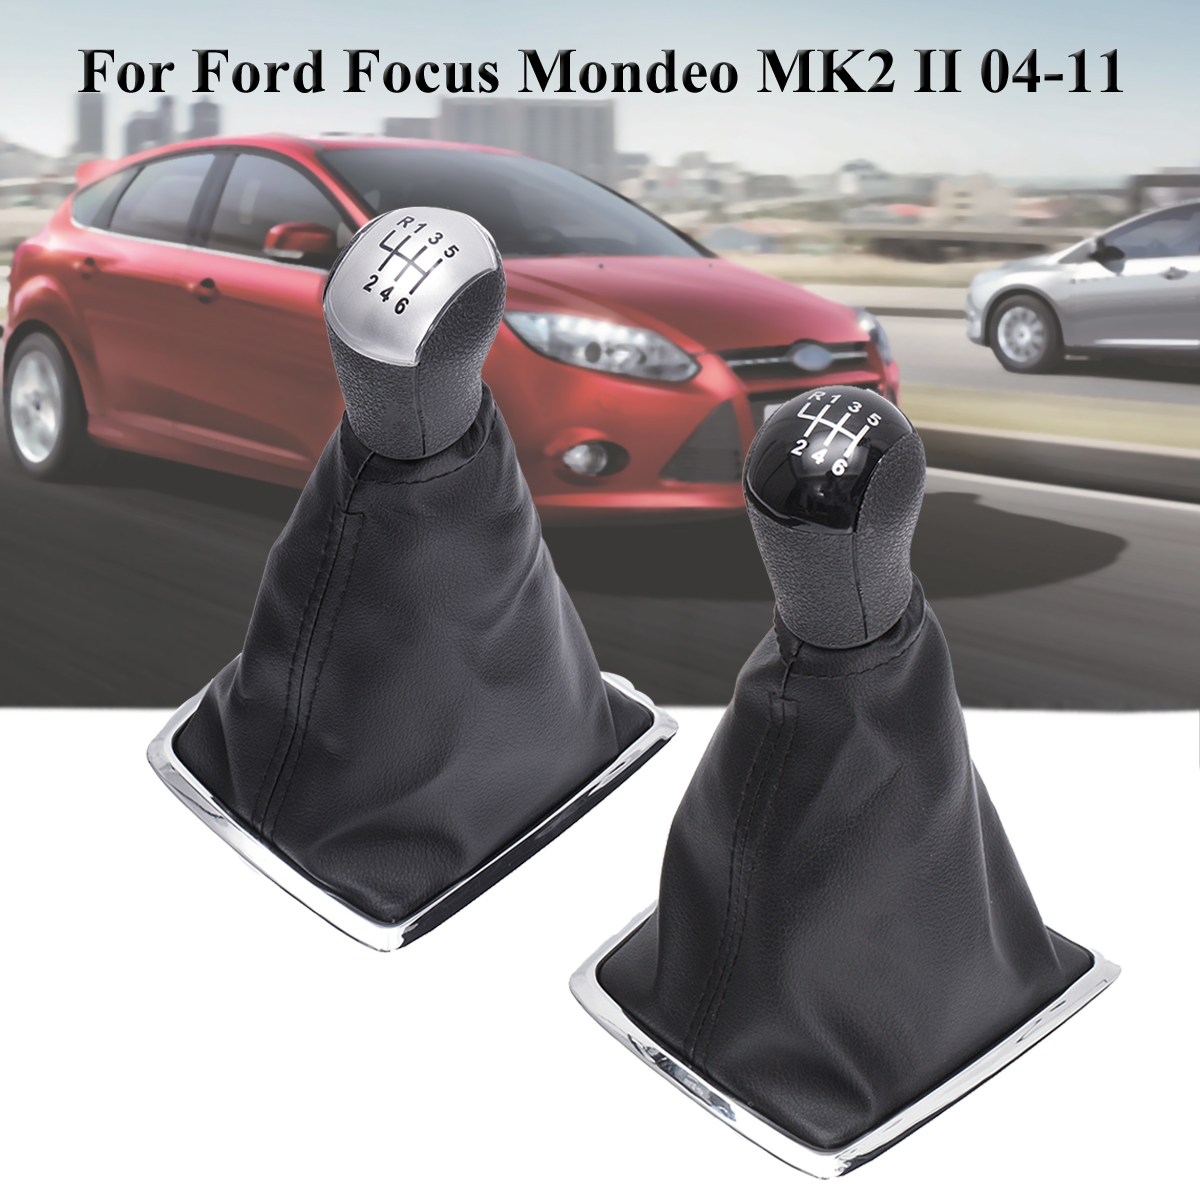 Car Gear Shift Stick Gaiter Dust Cover With Retainer Auto Gear Change Lever Gaiter For Ford Transit Connect 2006 2007 2008 2009 2010 2011 2012